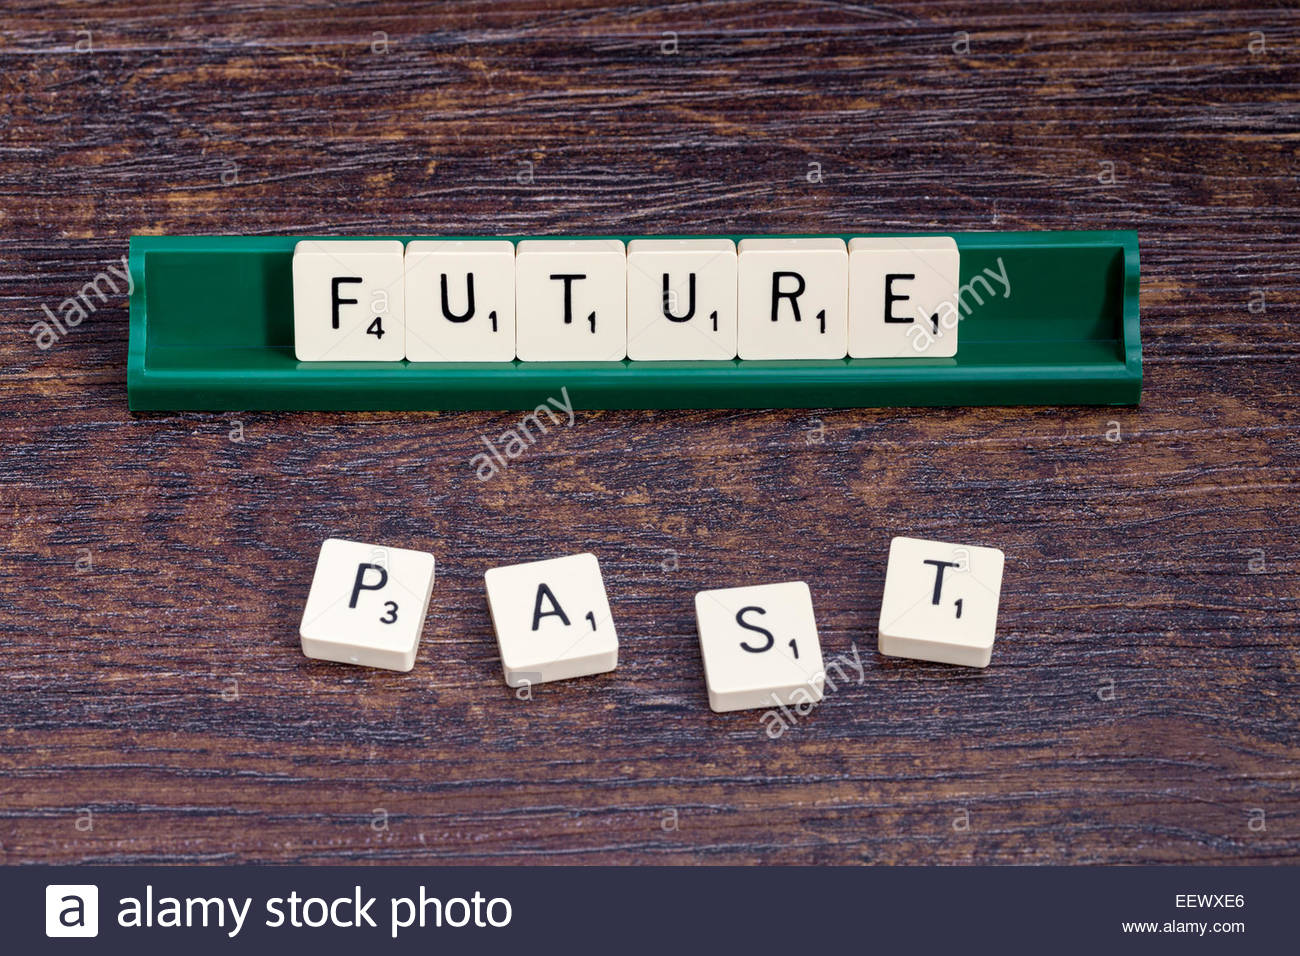 Future and Past spelled out with scrabble letters. - Stock Image